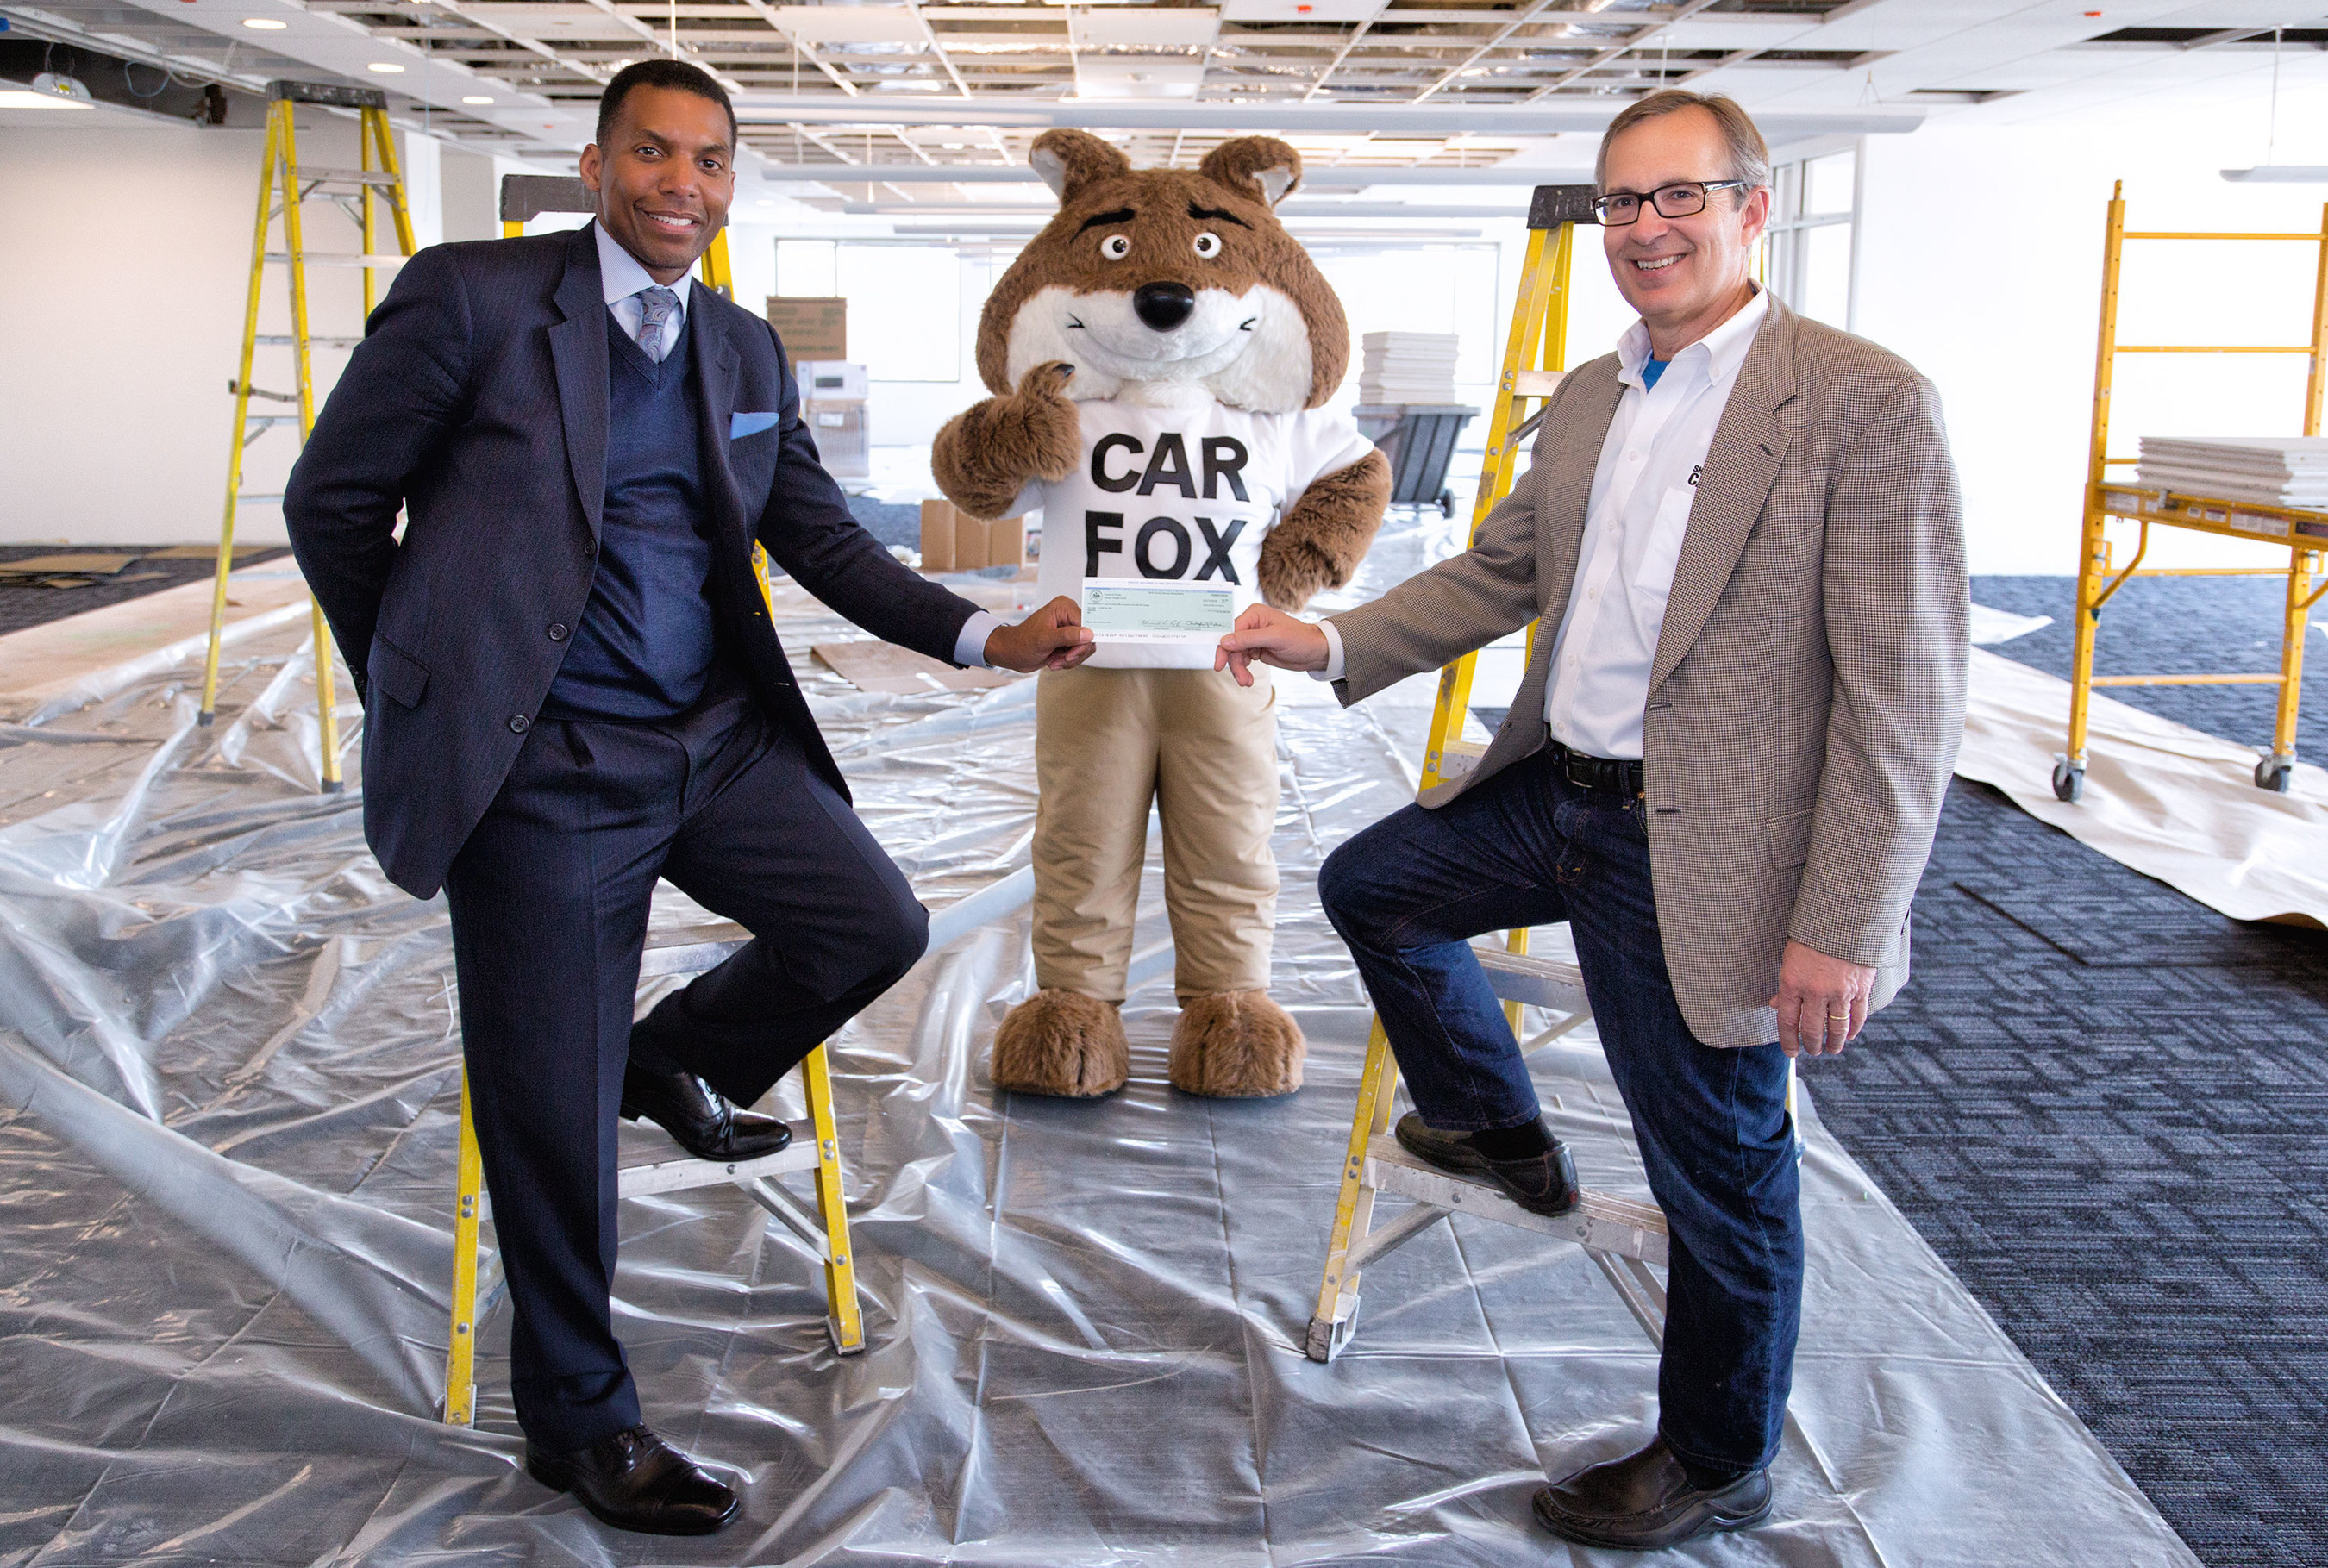 Rodney Lusk, left, from Fairfax County Economic Development Authority presents Carfax president Dick Raines with a $150,000 grant towards the expansion of Carfax headquarters in Centreville, Va.